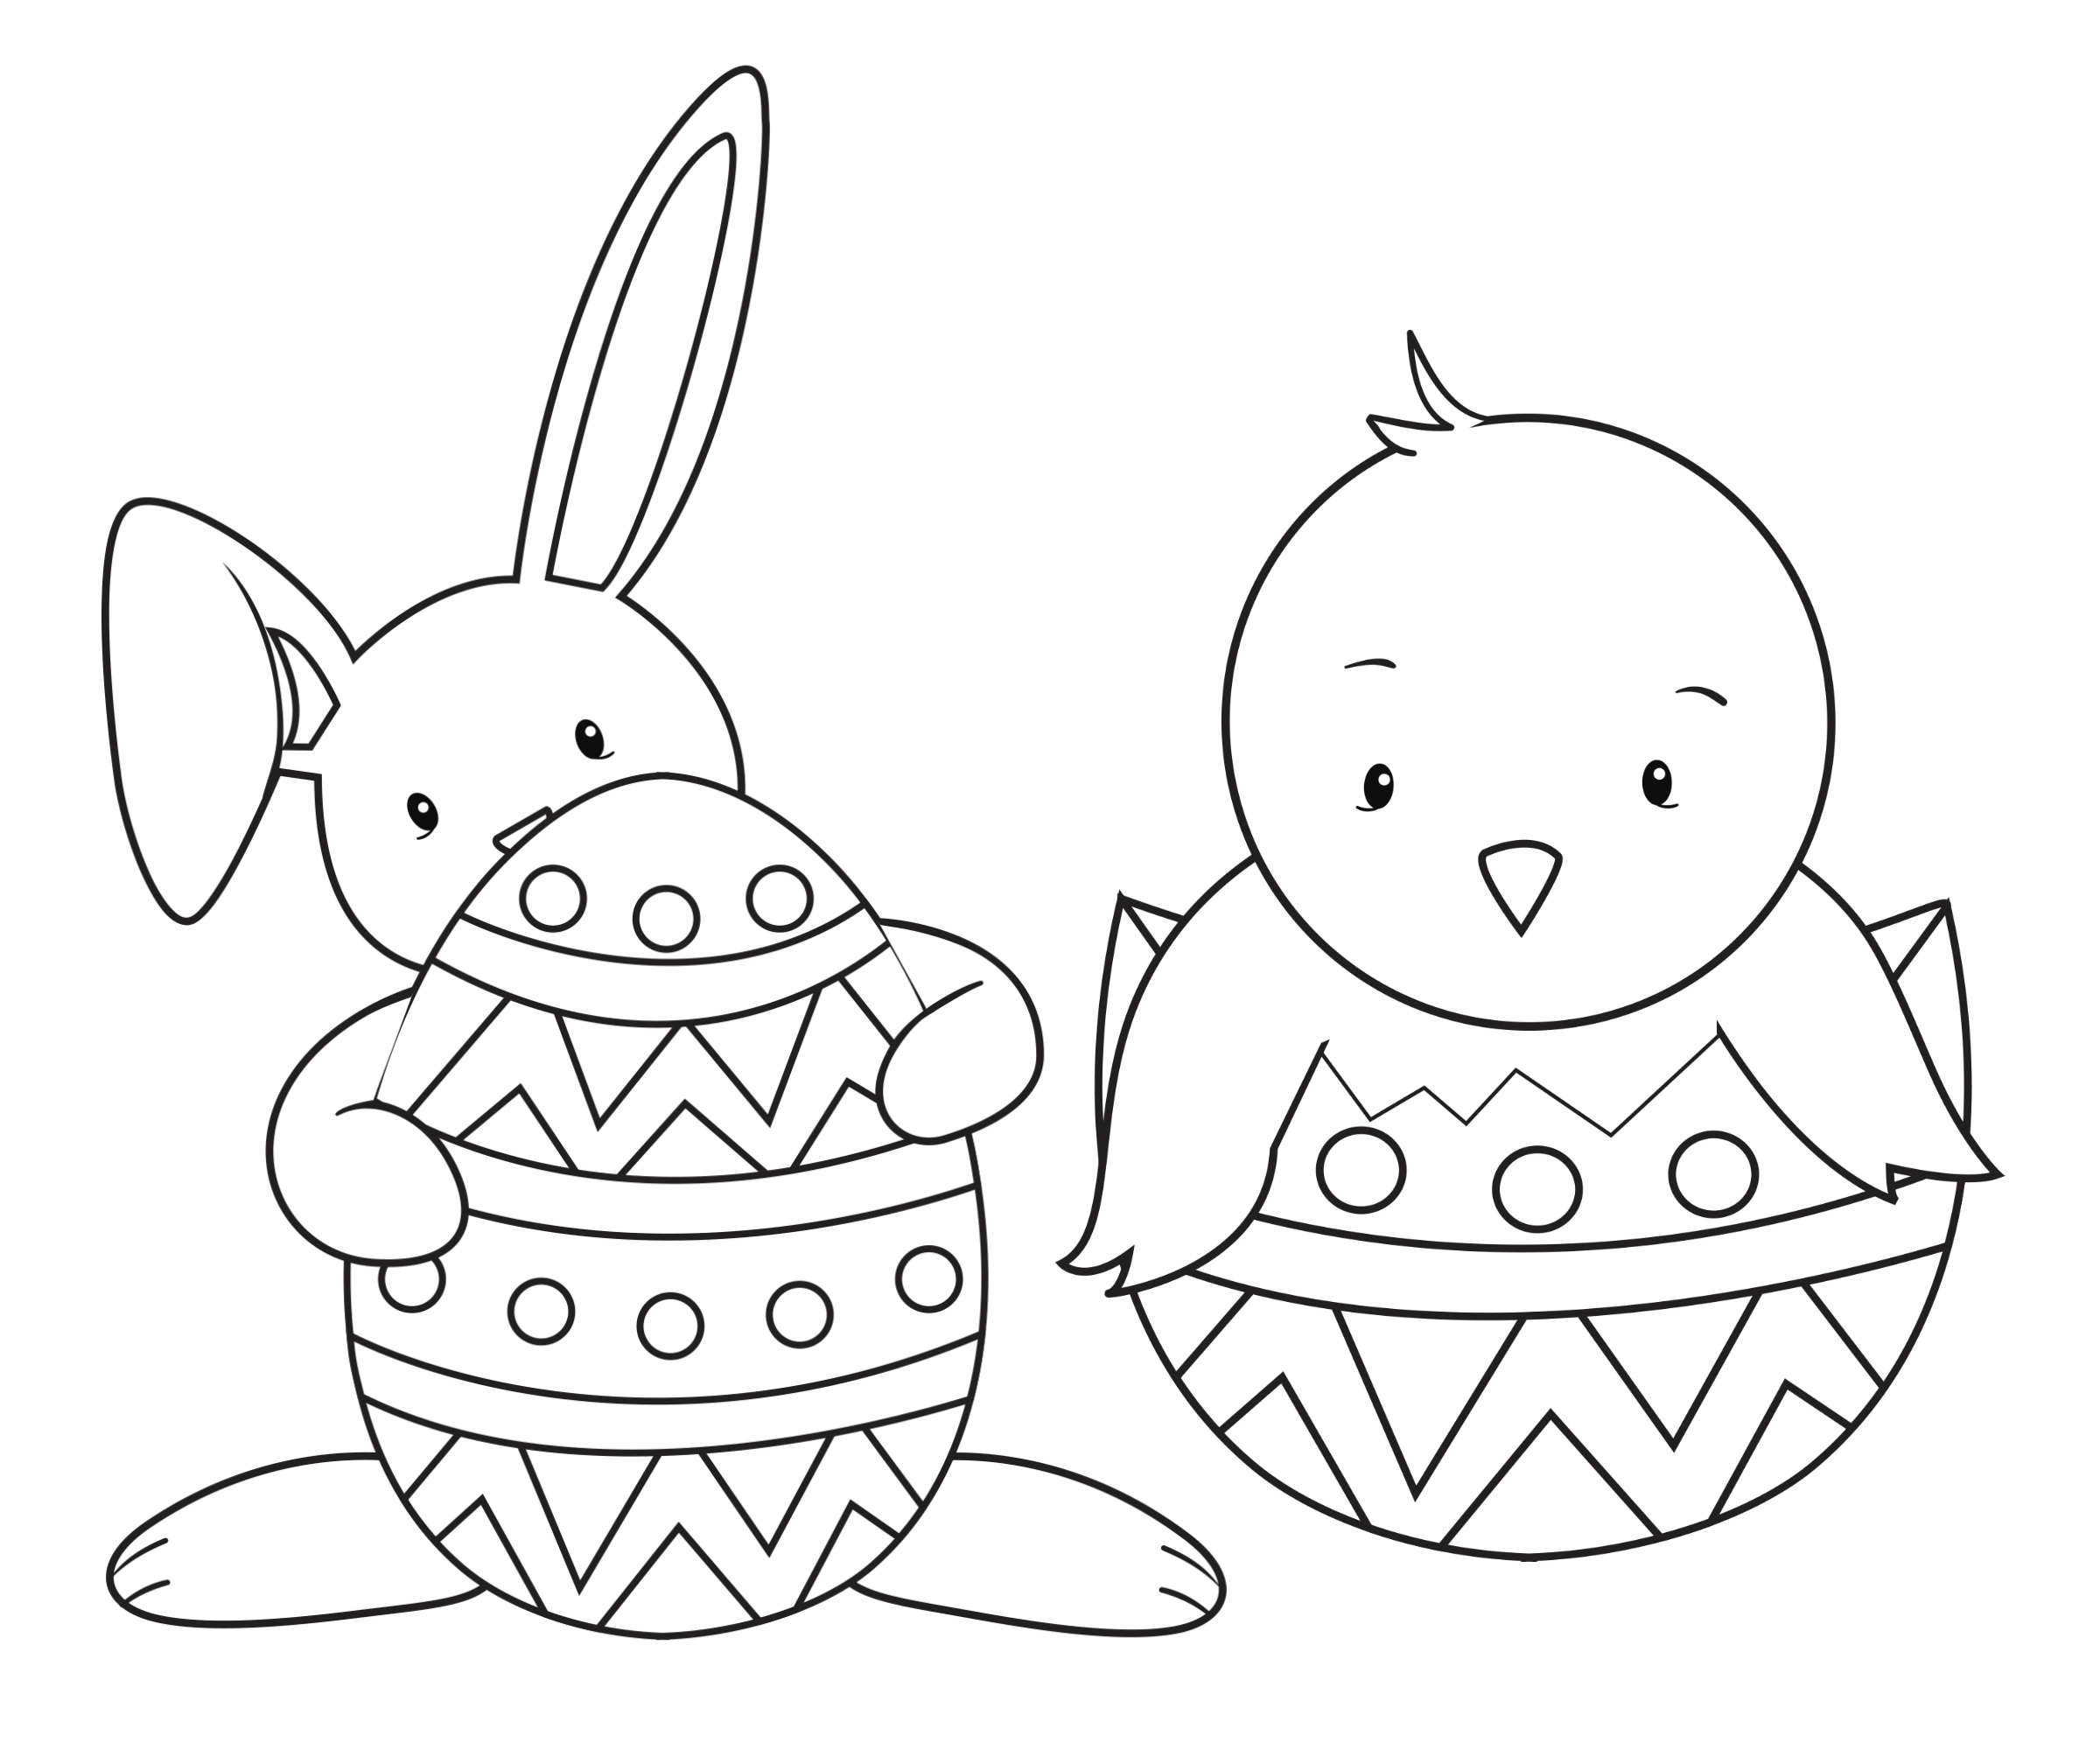 Easter Animals Coloring Pages Hoppy Bunny Page Pictures To Color For